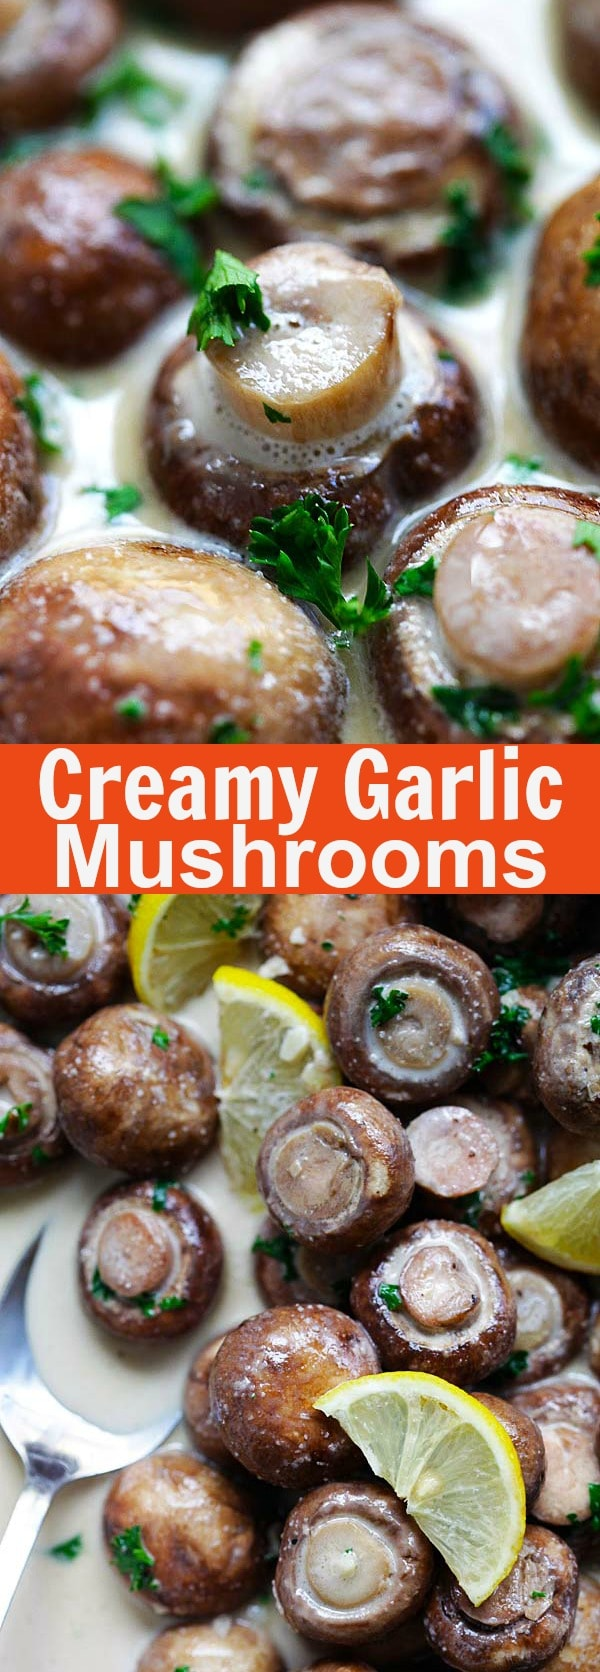 Creamy Garlic Mushrooms - quick and easy mushrooms with rich and creamy garlic sauce. This can be a side dish or a main entree with pasta | rasamalaysia.com